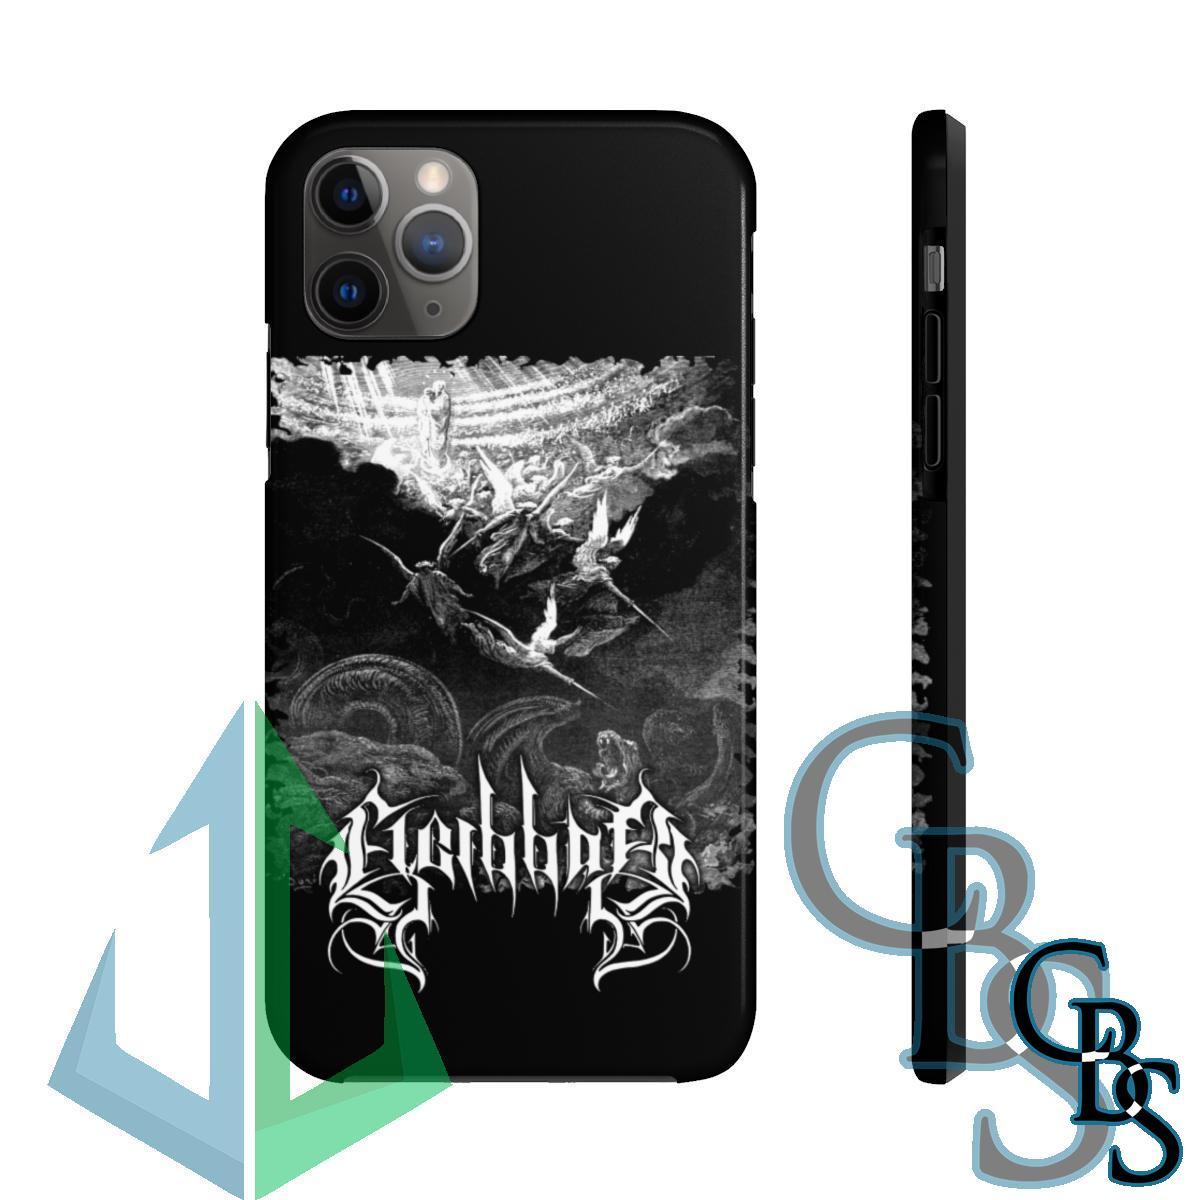 Elgibbor Angels Fall Tough iPhone Cases (iPhone 7/7 Plus, iPhone 8/8 Plus, iPhone X, XS, XR, iPhone 11, 11 Pro, 11 Pro Max)